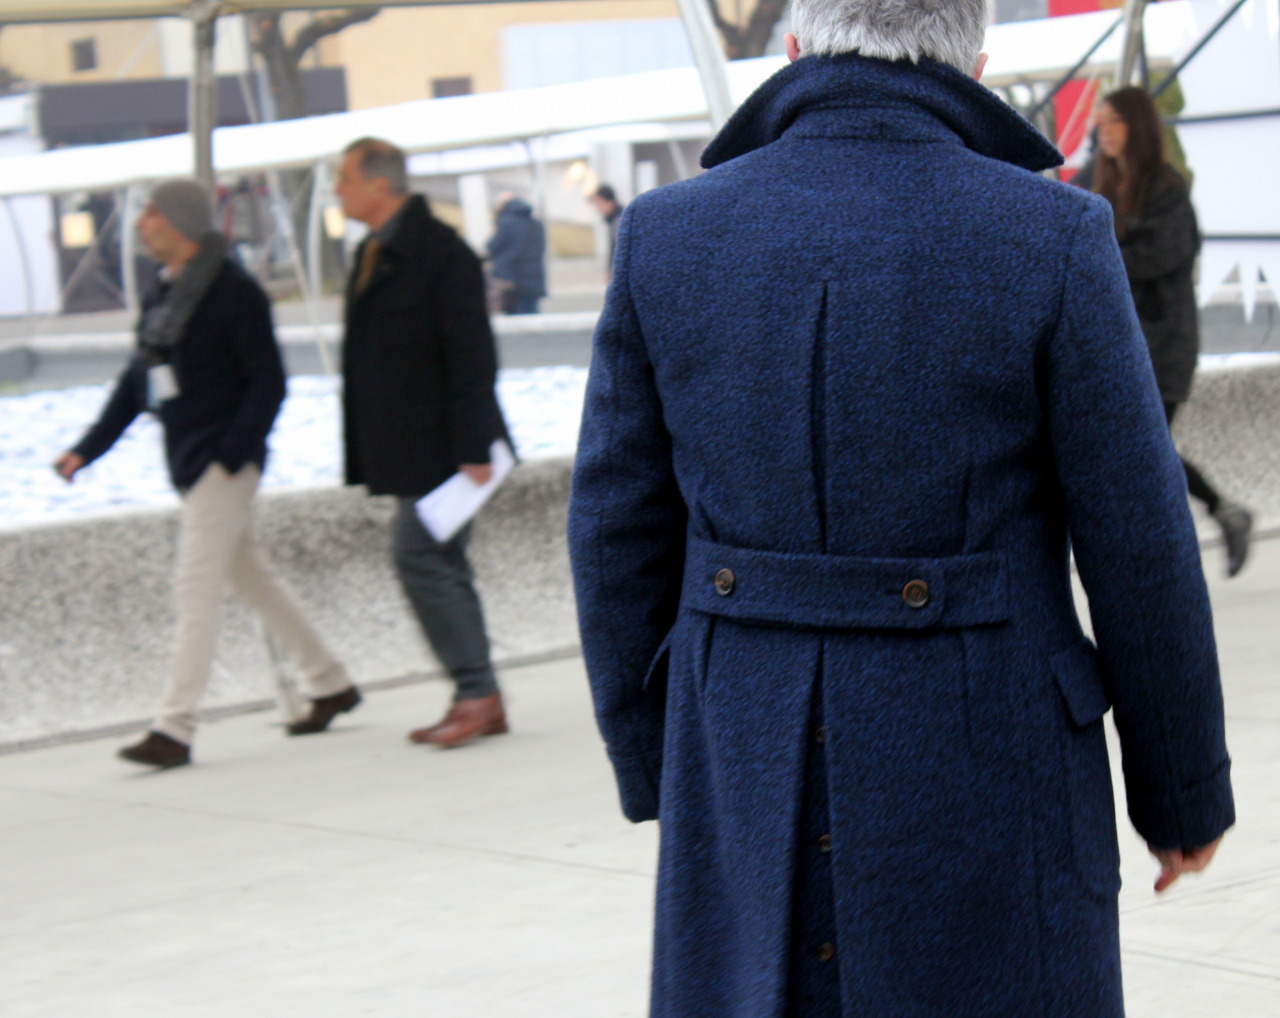 Saturday blues part II - One of the best overcoats seen at Pitti.